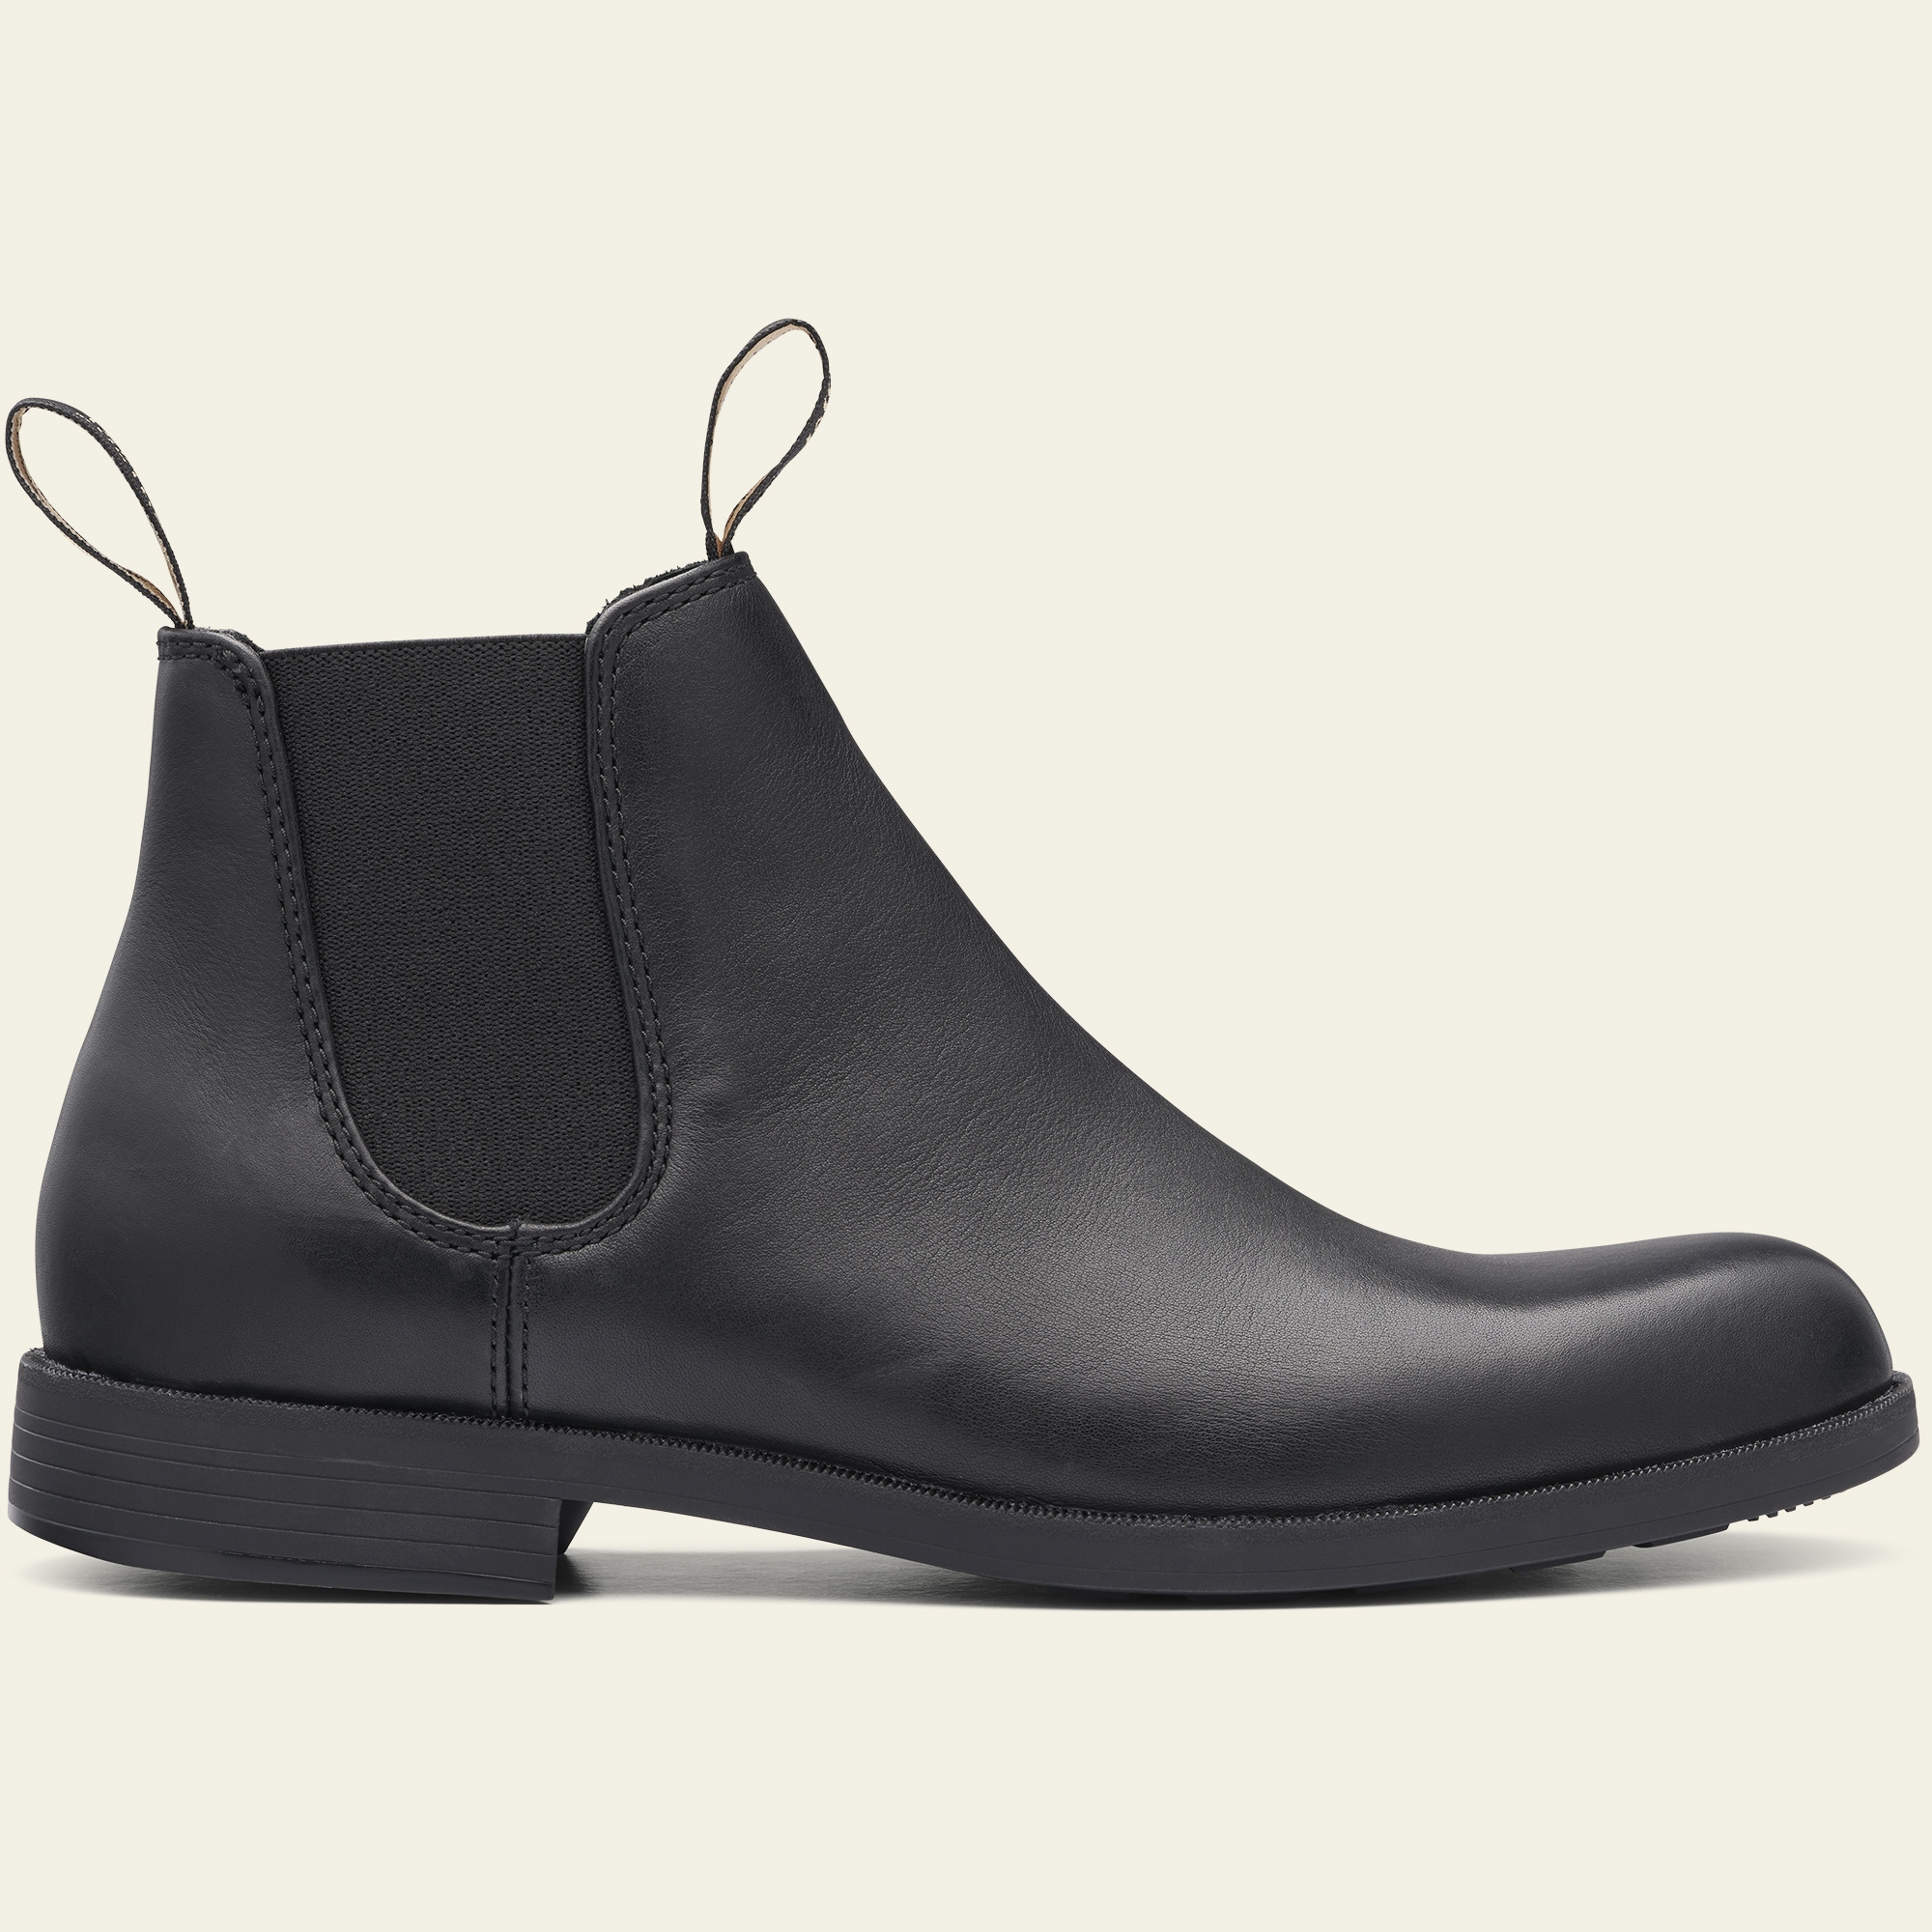 Black Leather Ankle Boots, Men's Style